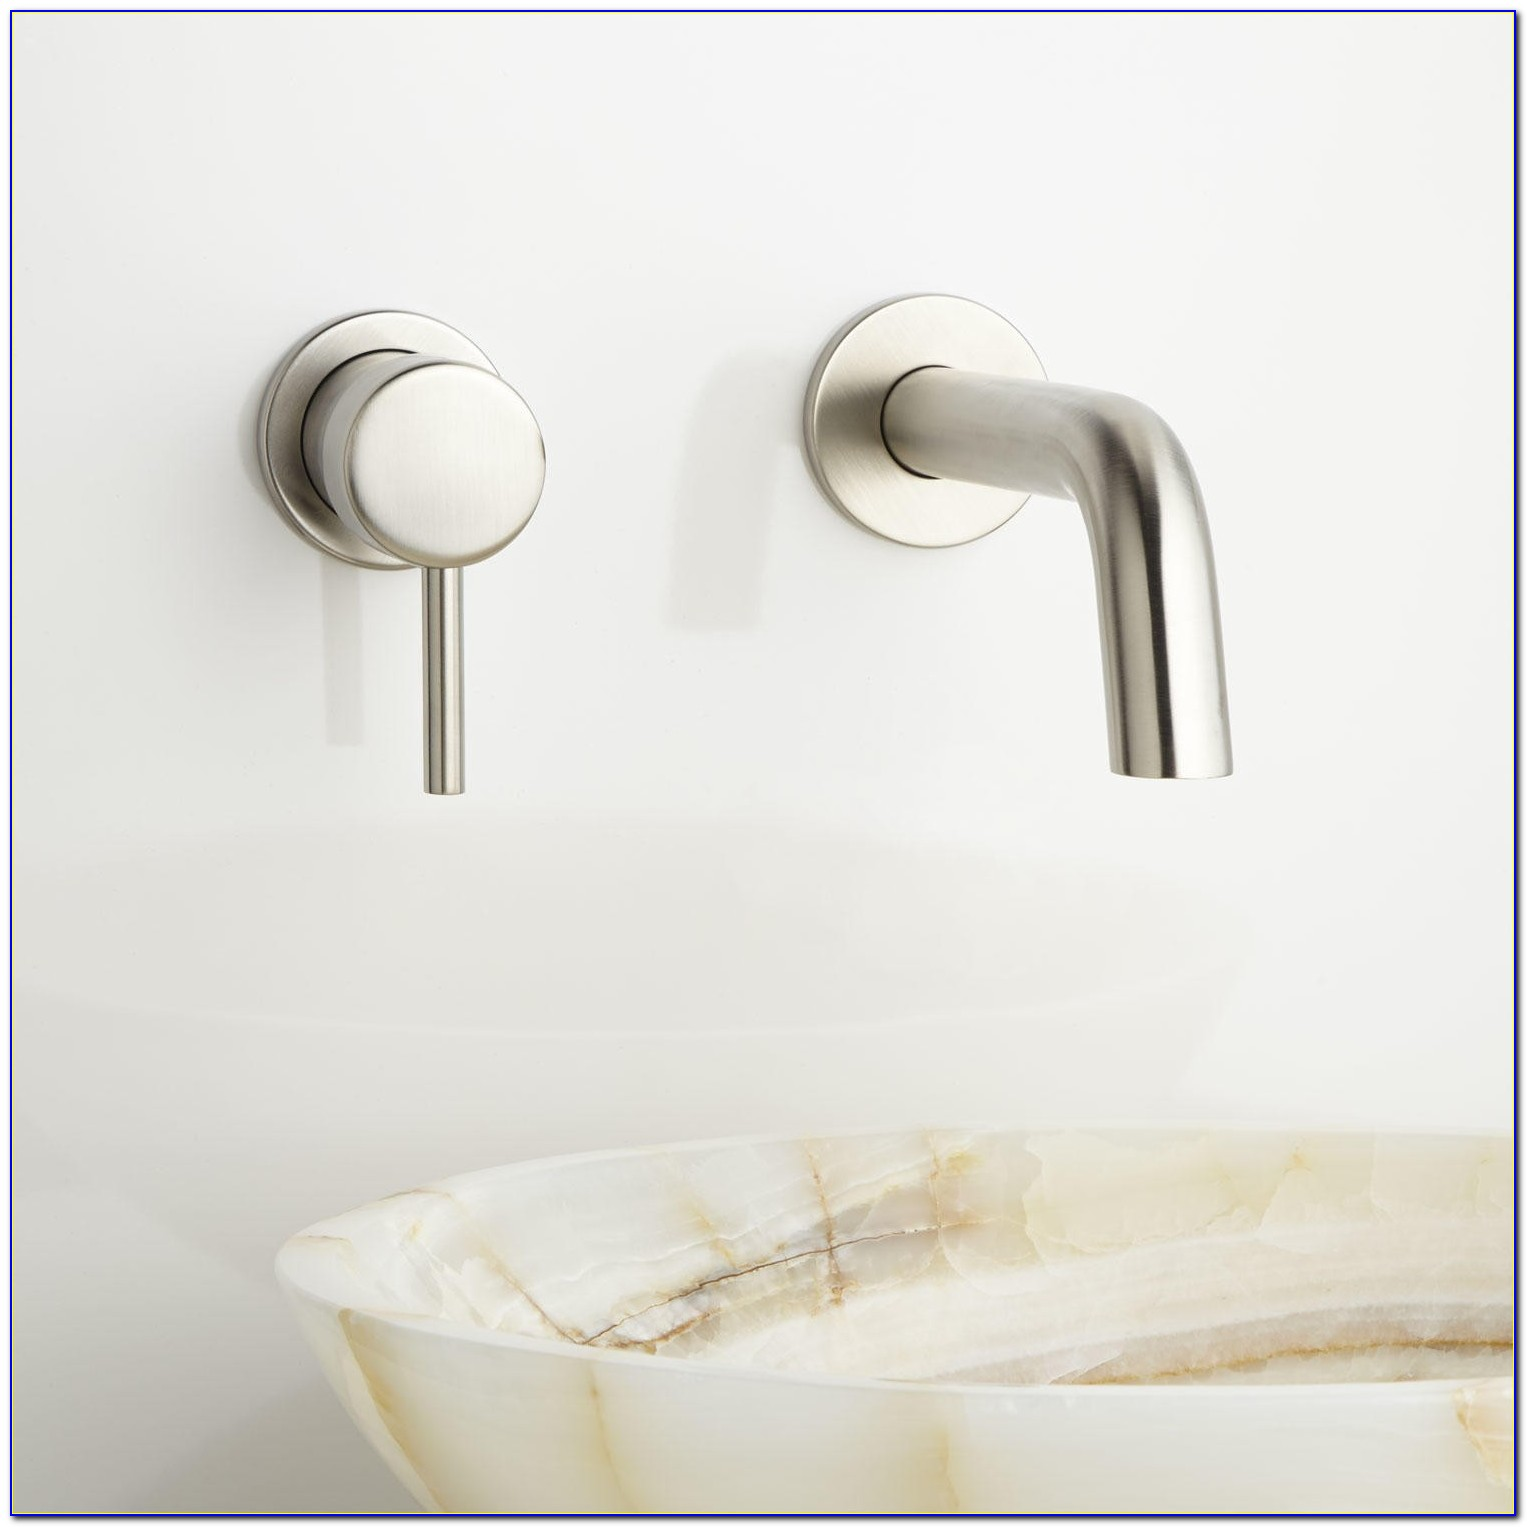 Wall Mount Bathroom Sink Faucet Installation